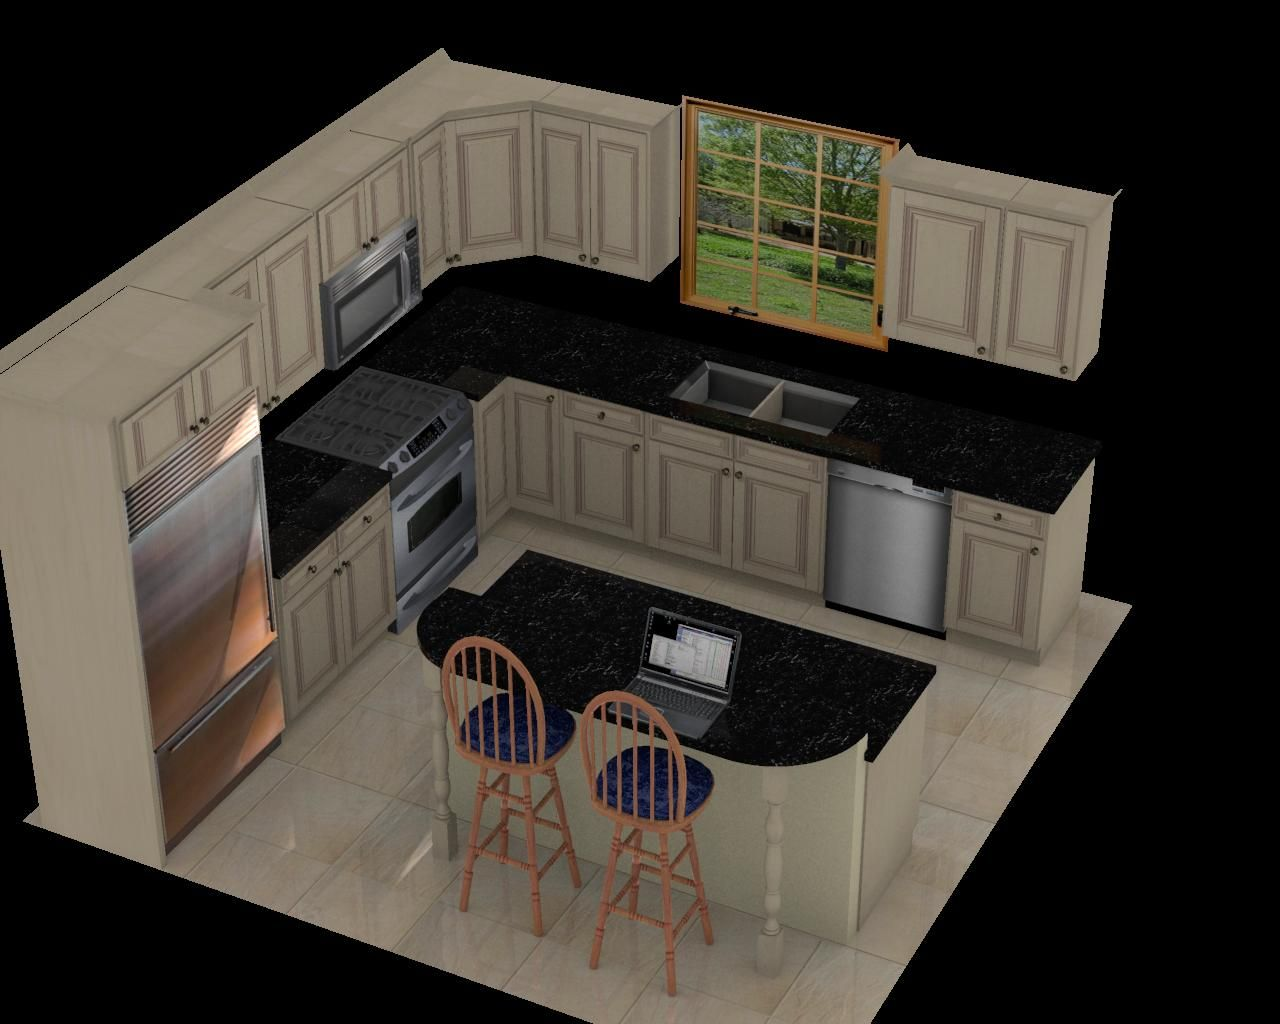 Luxury 12x12 kitchen layout with island 51 for with 12x12 for Kitchen ideas 12 x 12